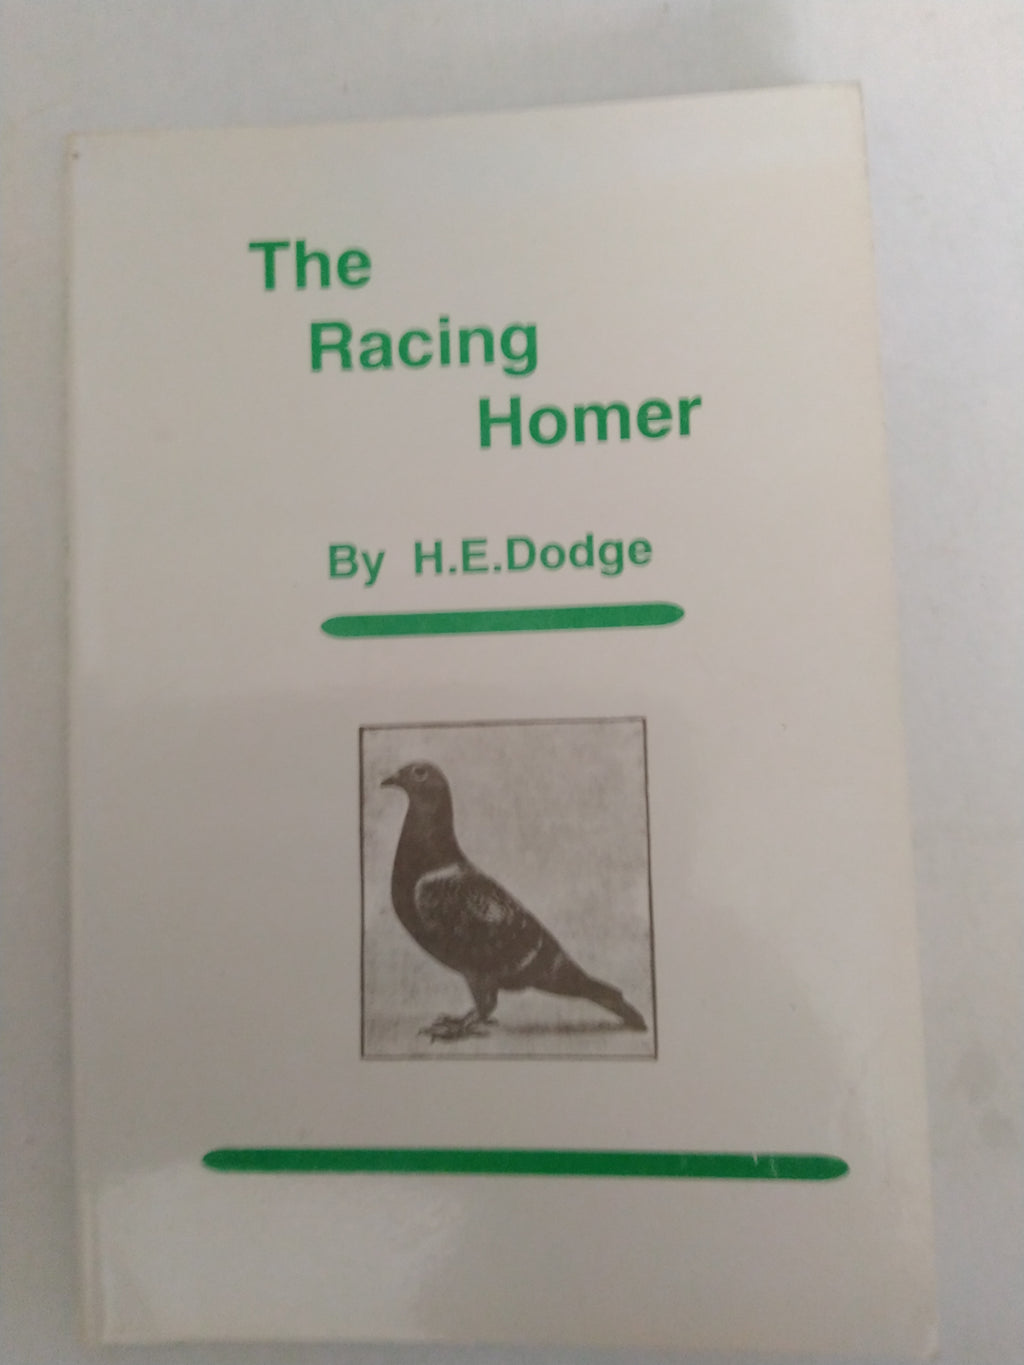 The Racing Homer By H.E.Dodge Revised Edition by J. Barnes